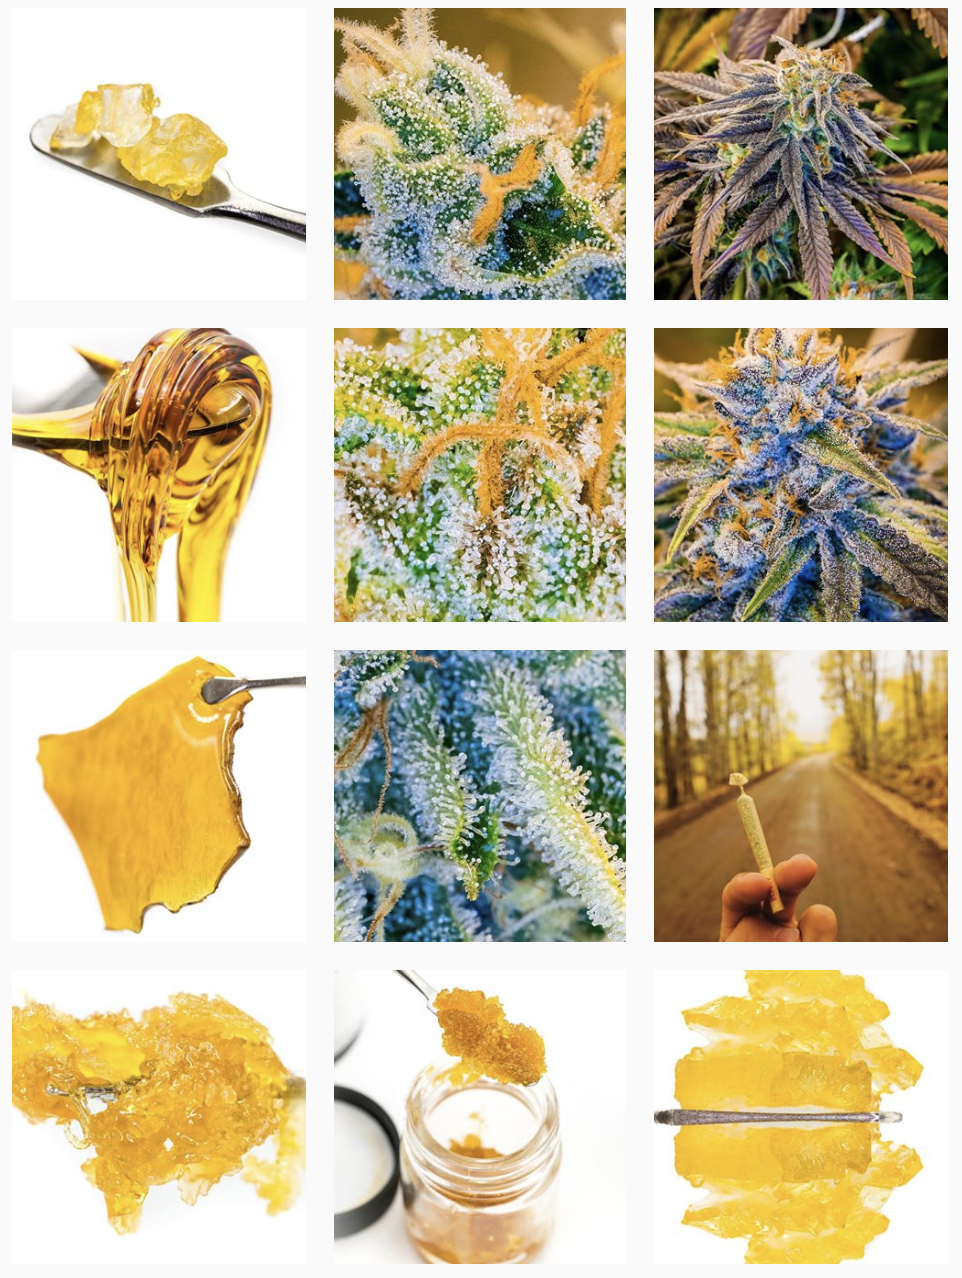 FRANKIEBOY PHOTOGRAPHY INSTAGRAM PAGE | ALL CONTENT CREATED BY COLORADO CANNABIS PHOTOGRAPHY X FBP